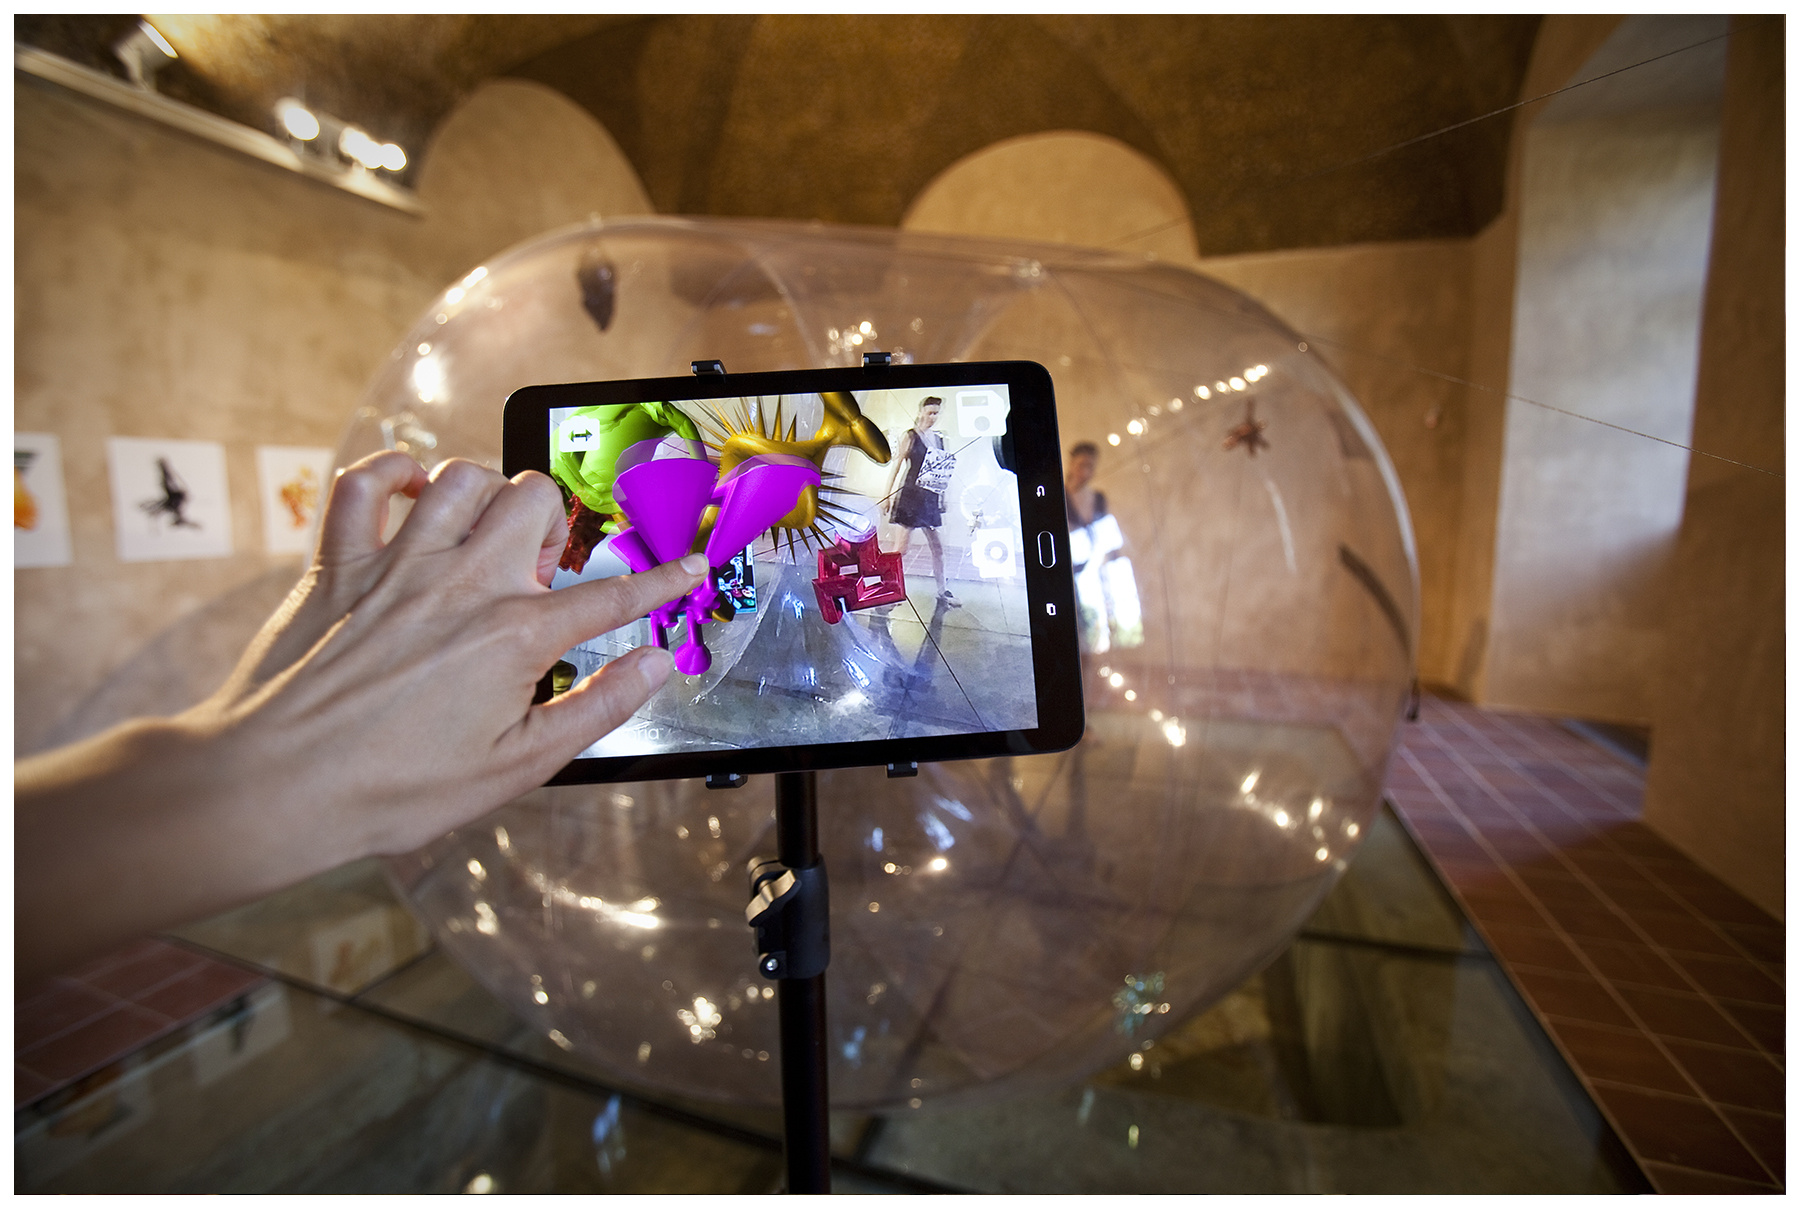 Image showing interaction with tablet app.